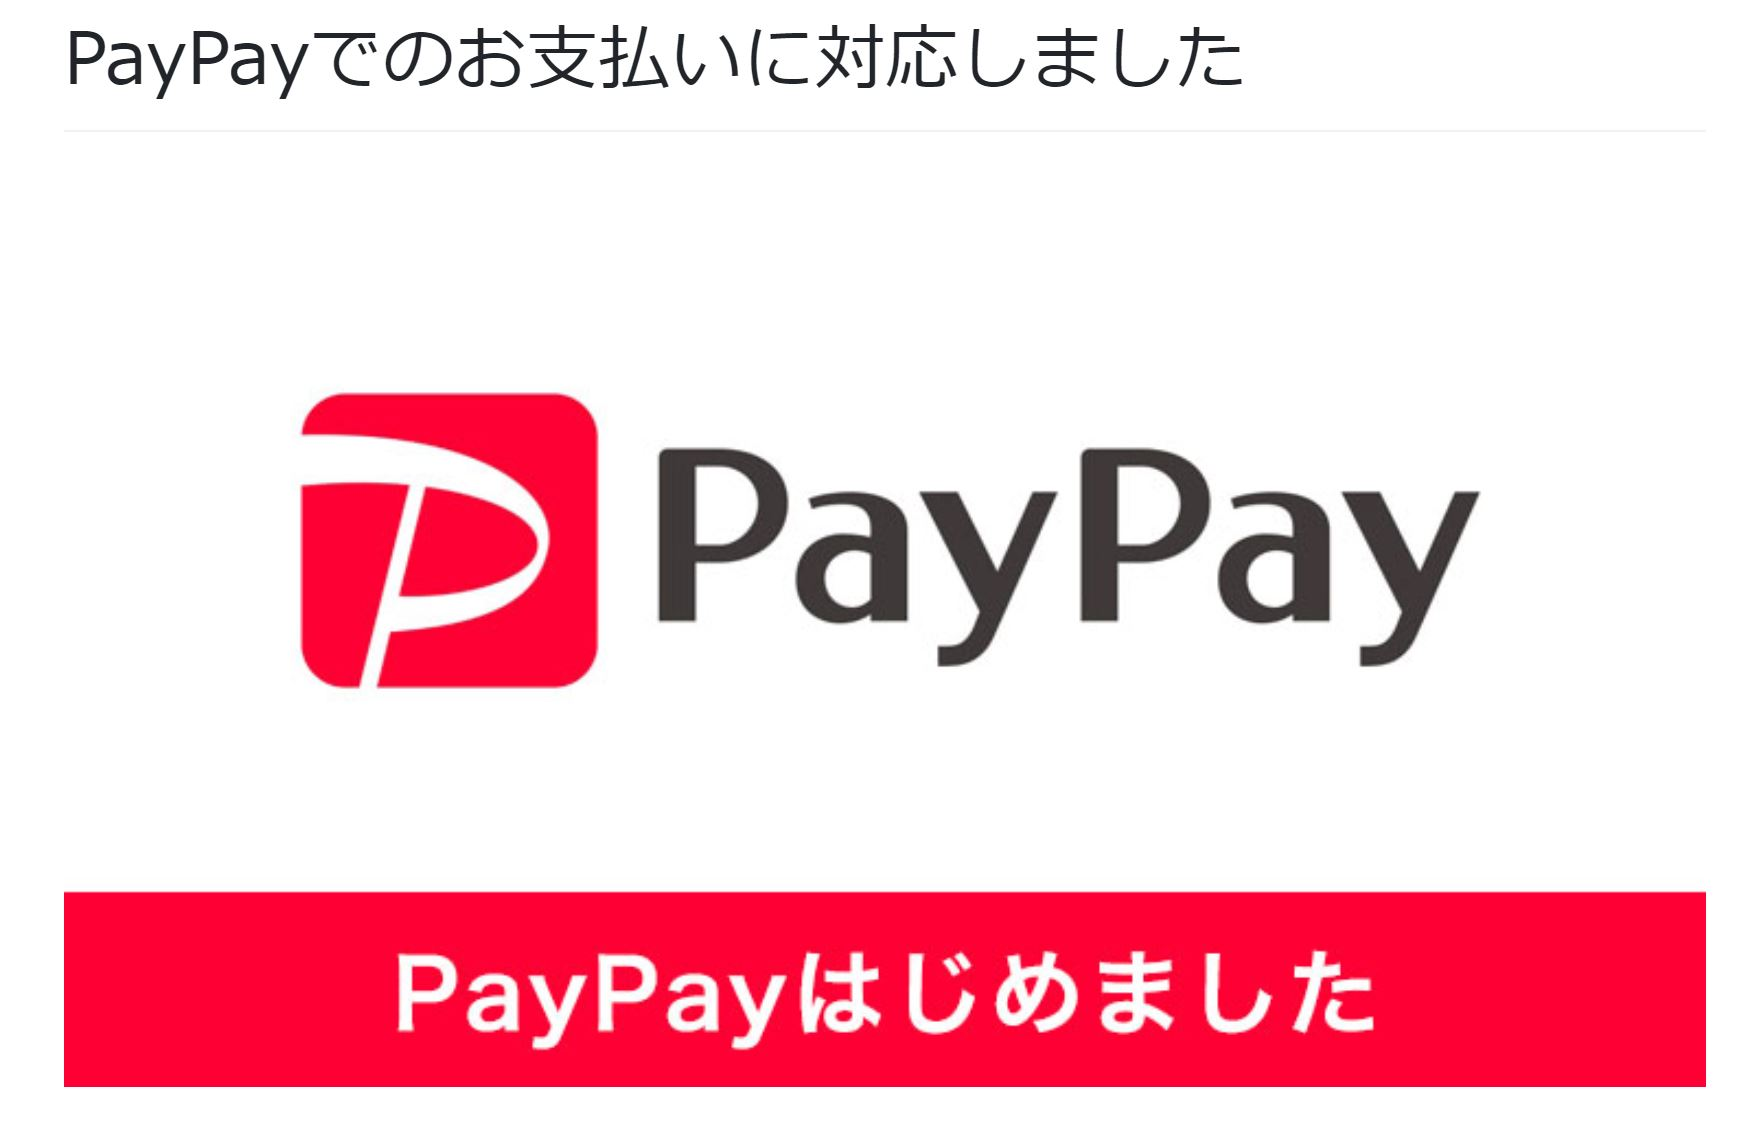 PayPay似対応しました!